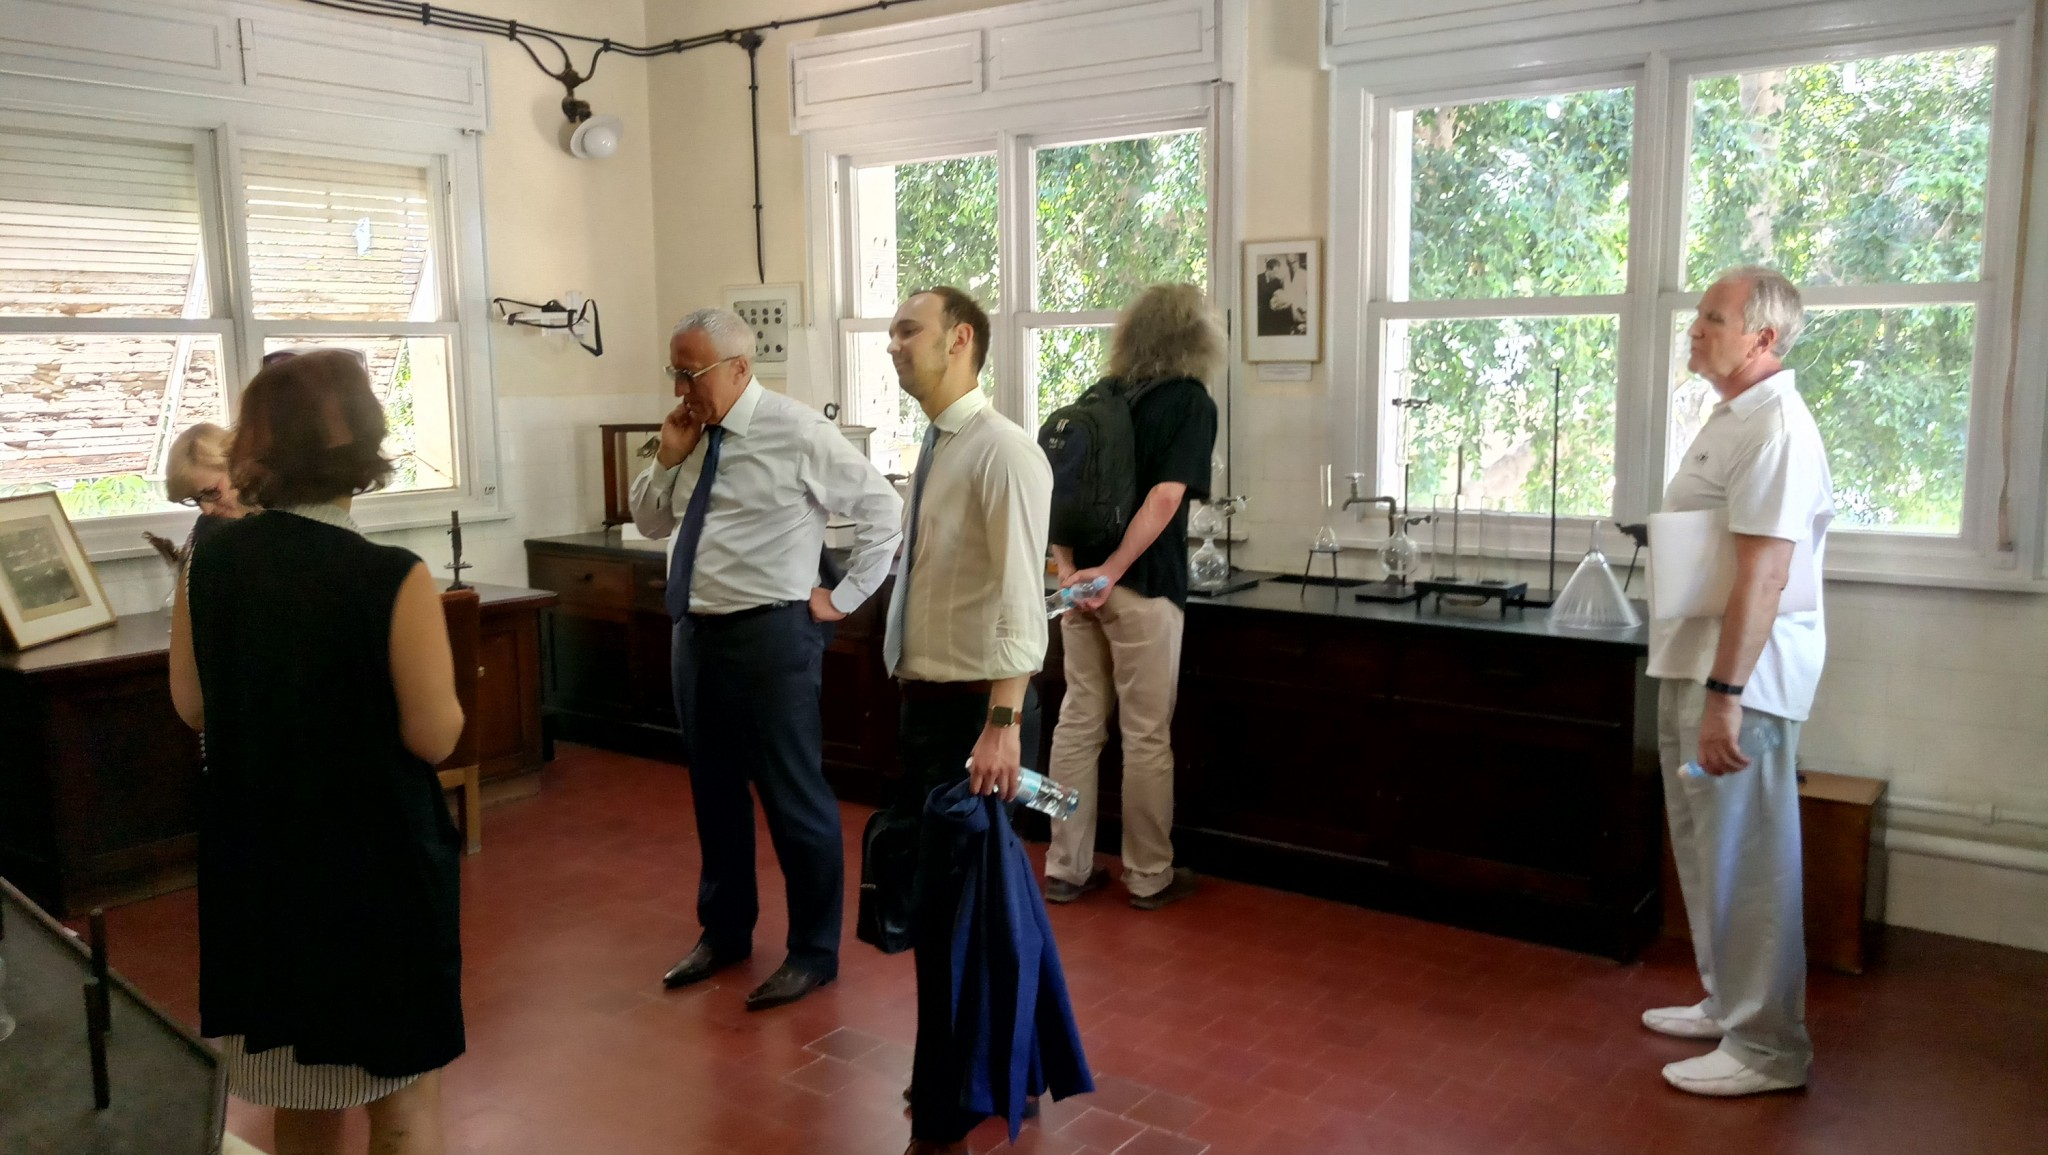 The Skoltech delegation visits the historic laboratory of Chaim Weizmann, the first president of Israel and founder of the Weizmann Institute of Science.